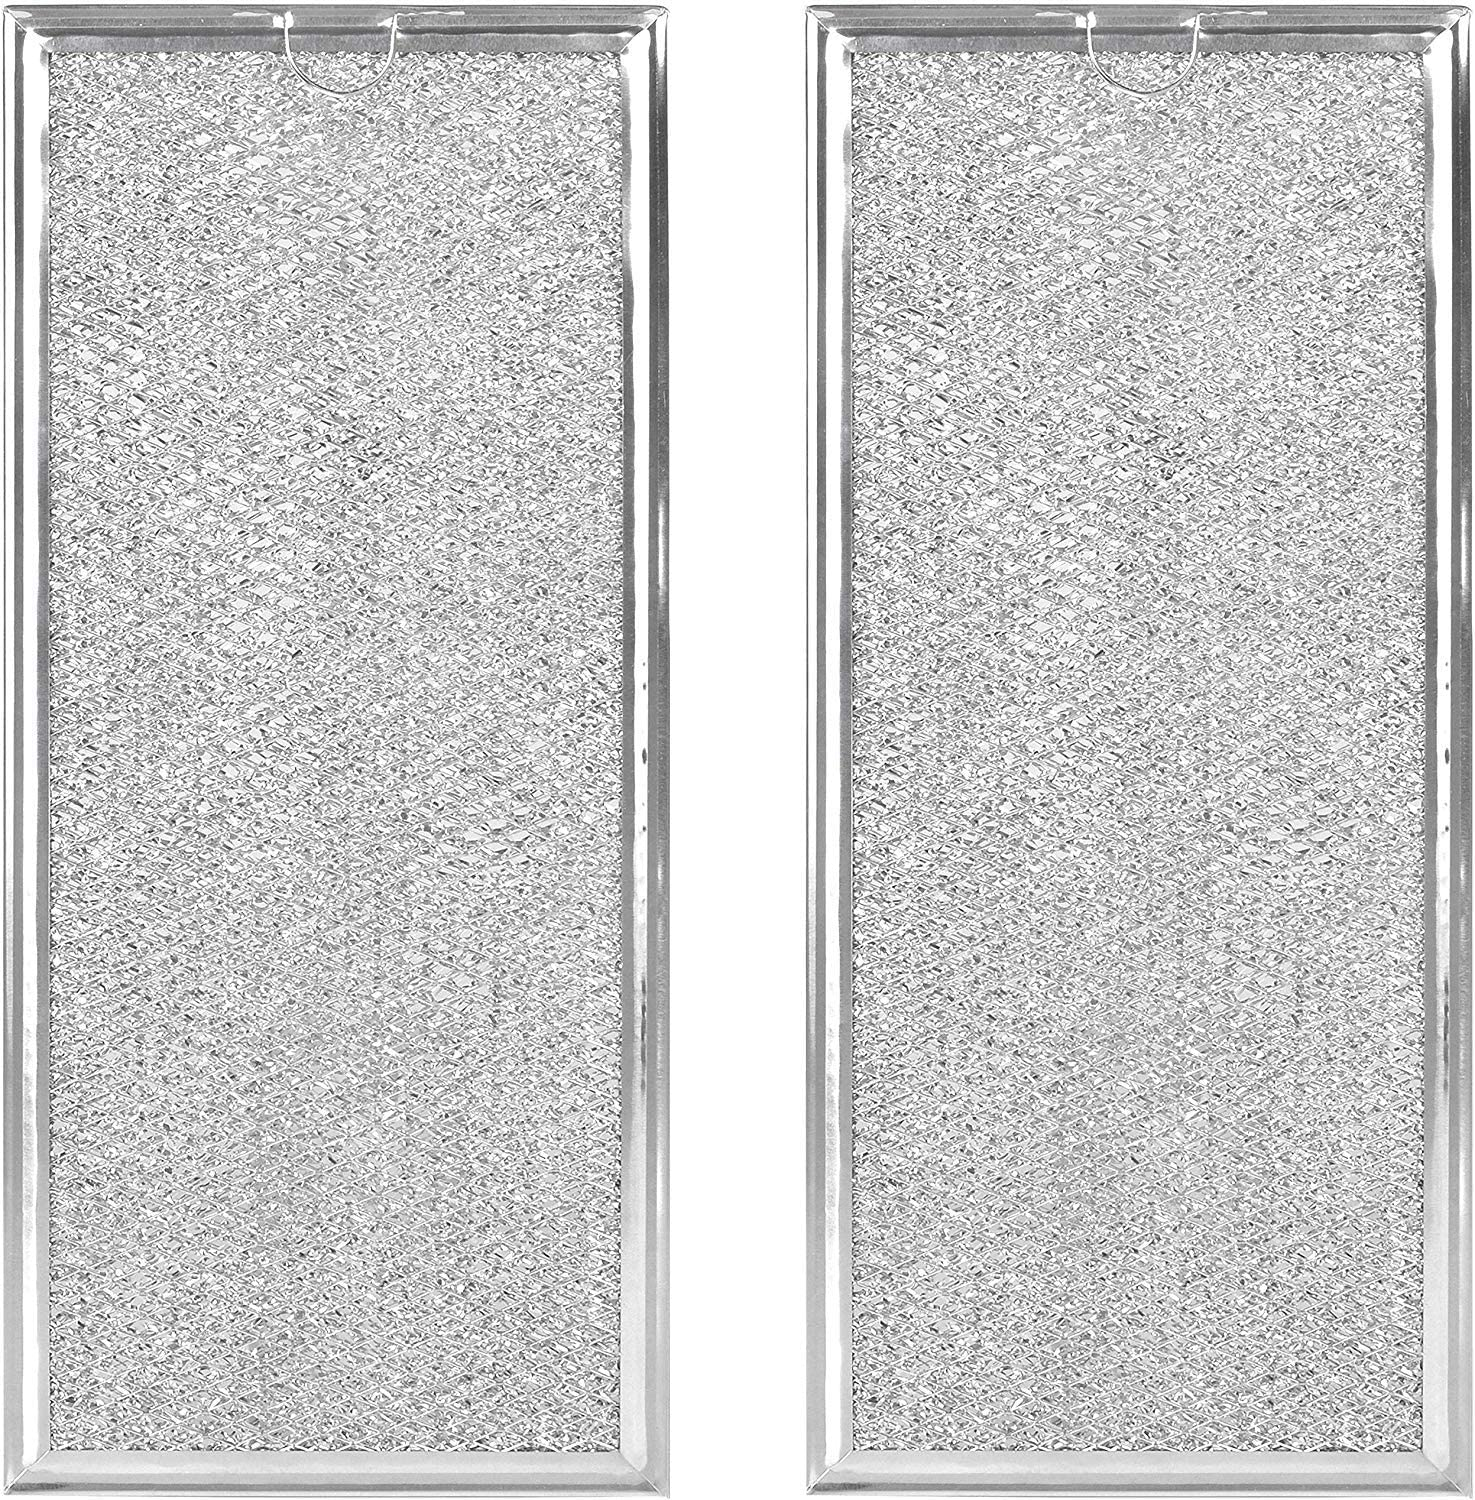 w10208631a microwave grease filter compatible with whirlpool and ge microwaves 2 pack